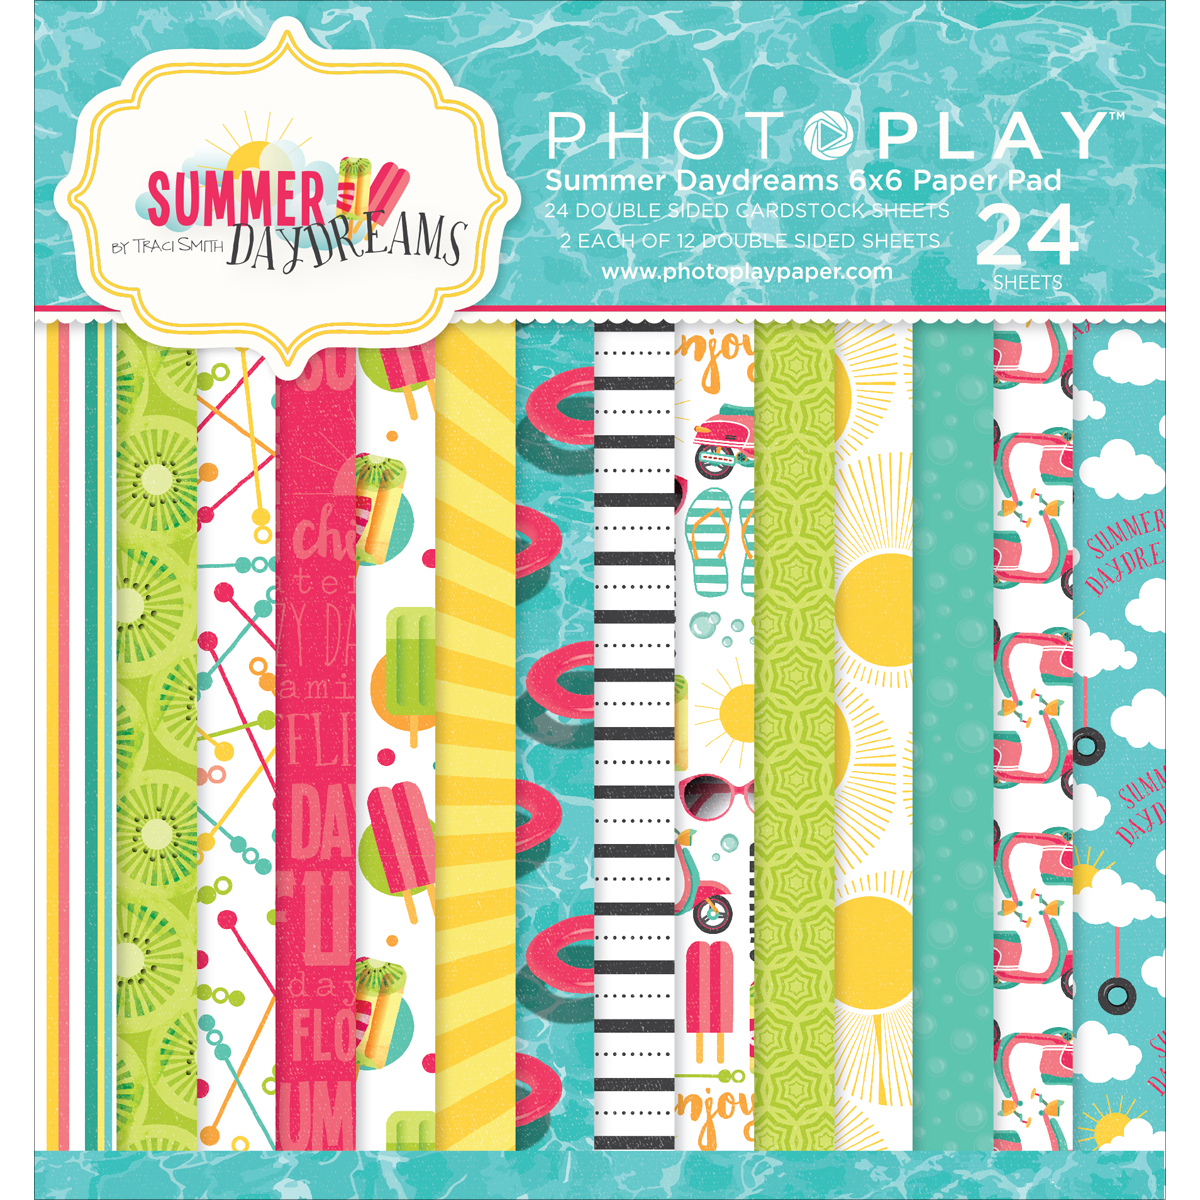 "Photo Play Double-Sided Paper Pad, 6"" x 6"", 24pk, Summer Daydreams, 12 Designs/2 Each"